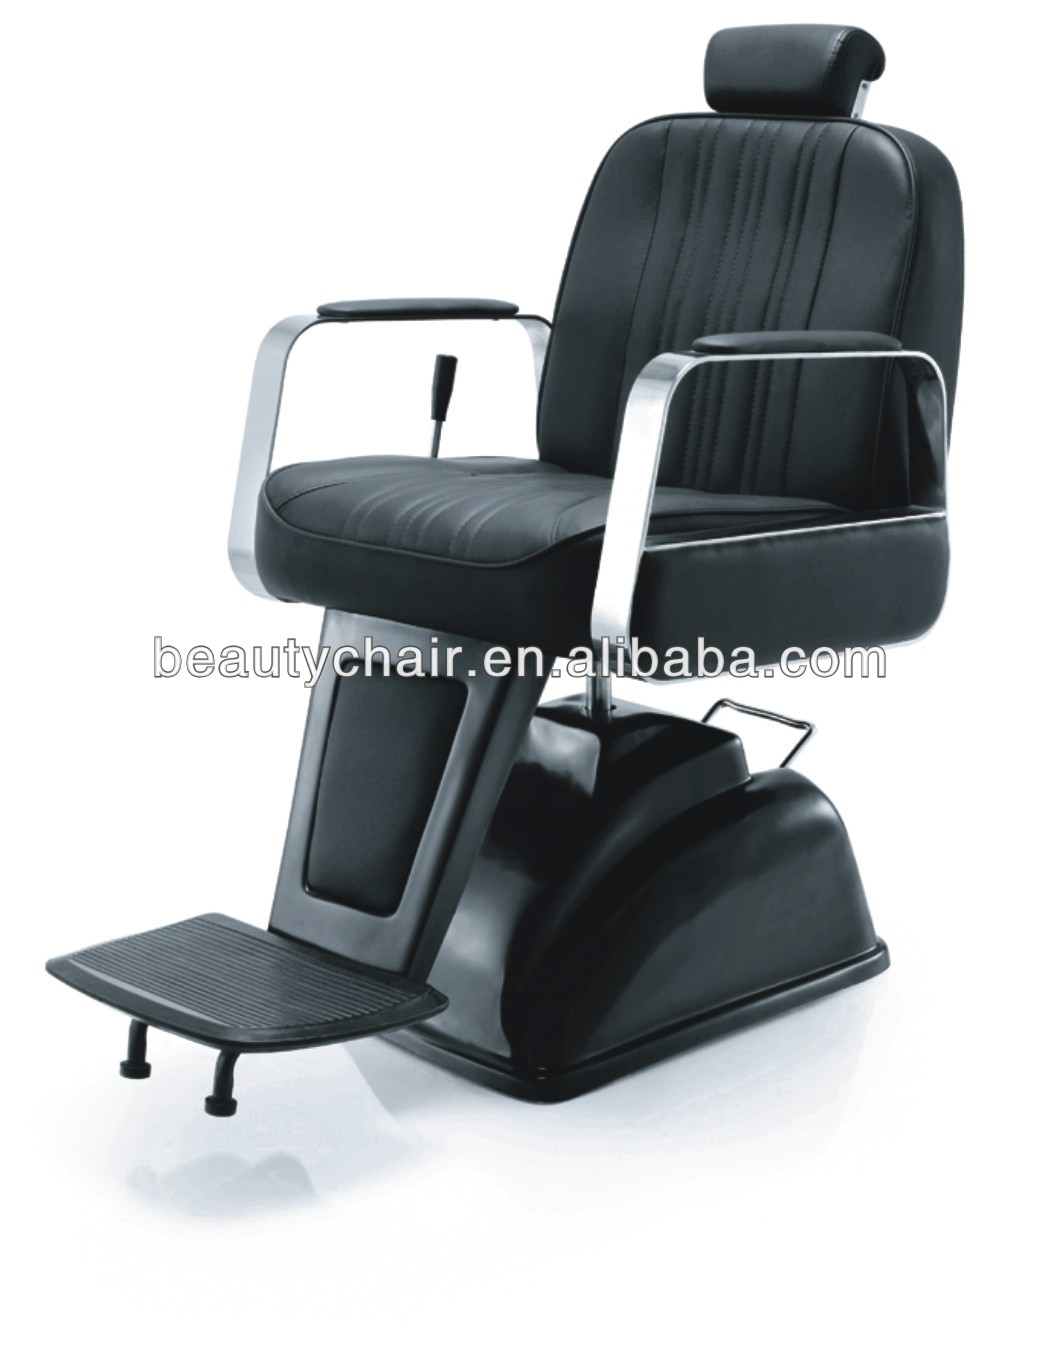 donate image for appliences saloon at available pm whatsapp parlor home chair donation beauty